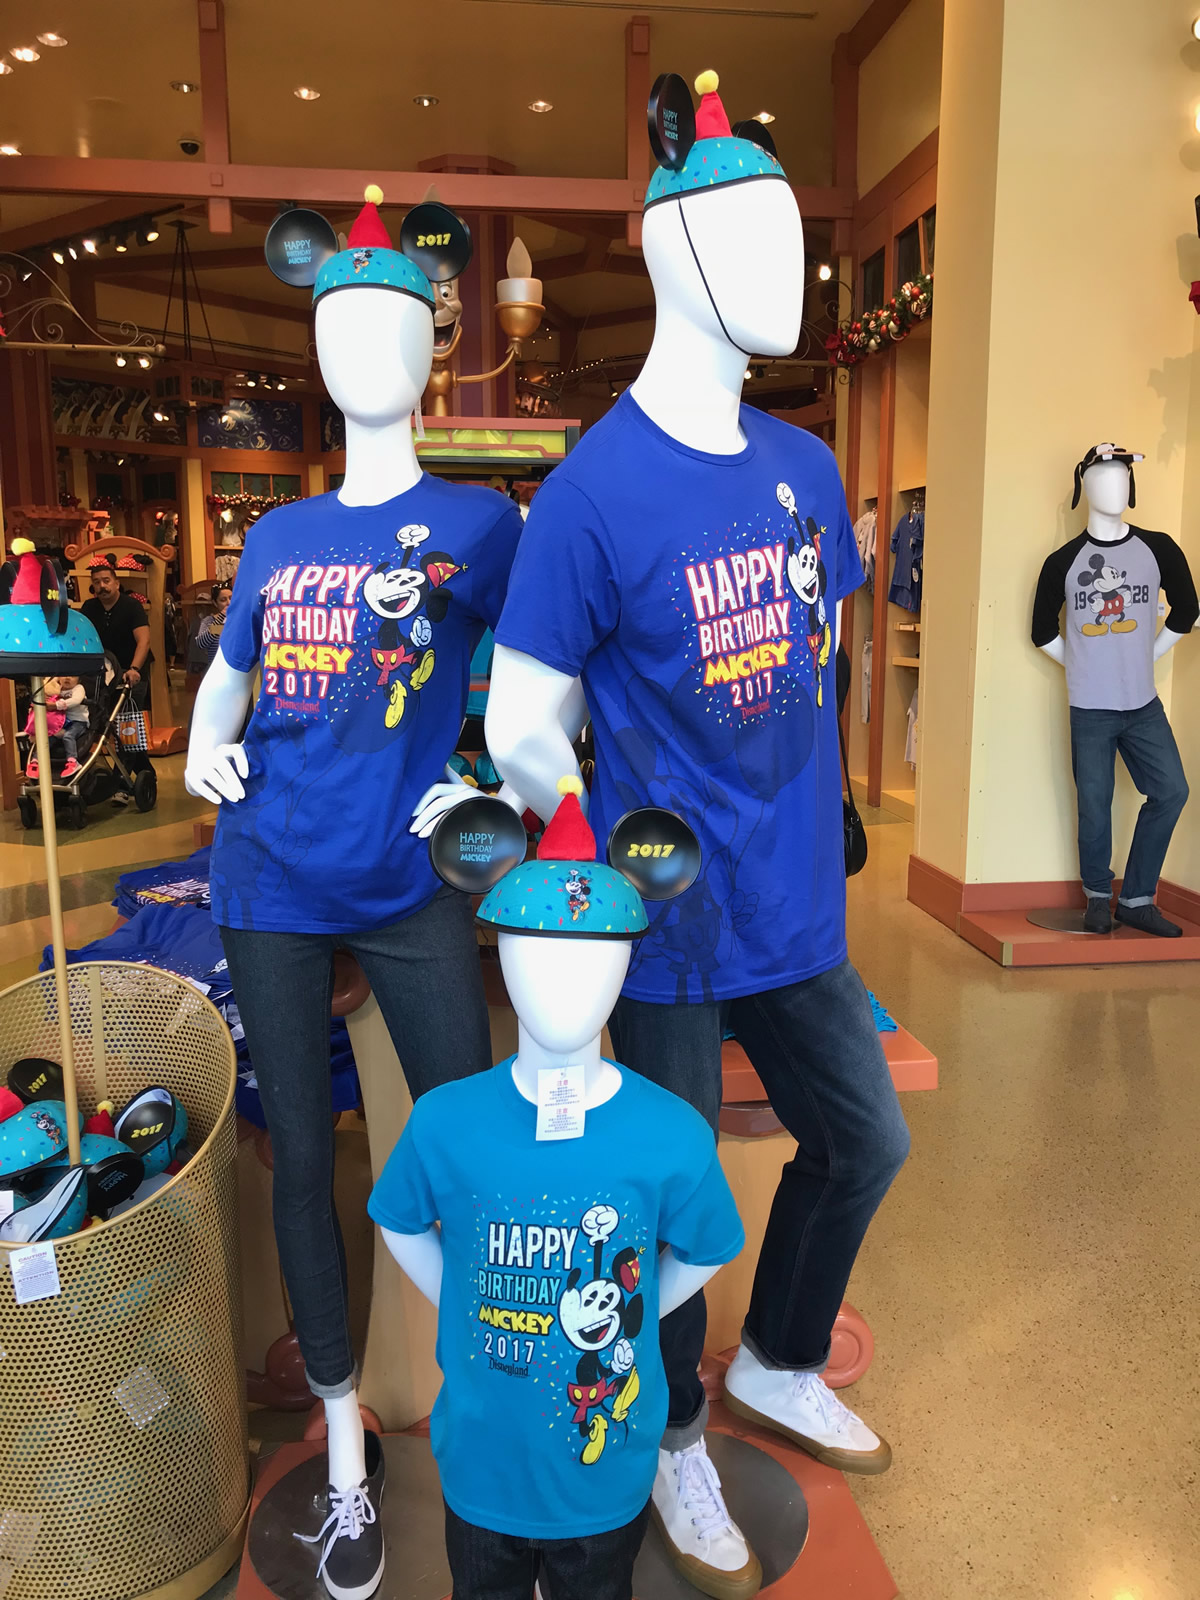 Disneyland Shops Sold Shirts And Ear Hats To Commemorate The Birthday Of Mickey Mouse Photo By Adrienne Vincent Phoenix